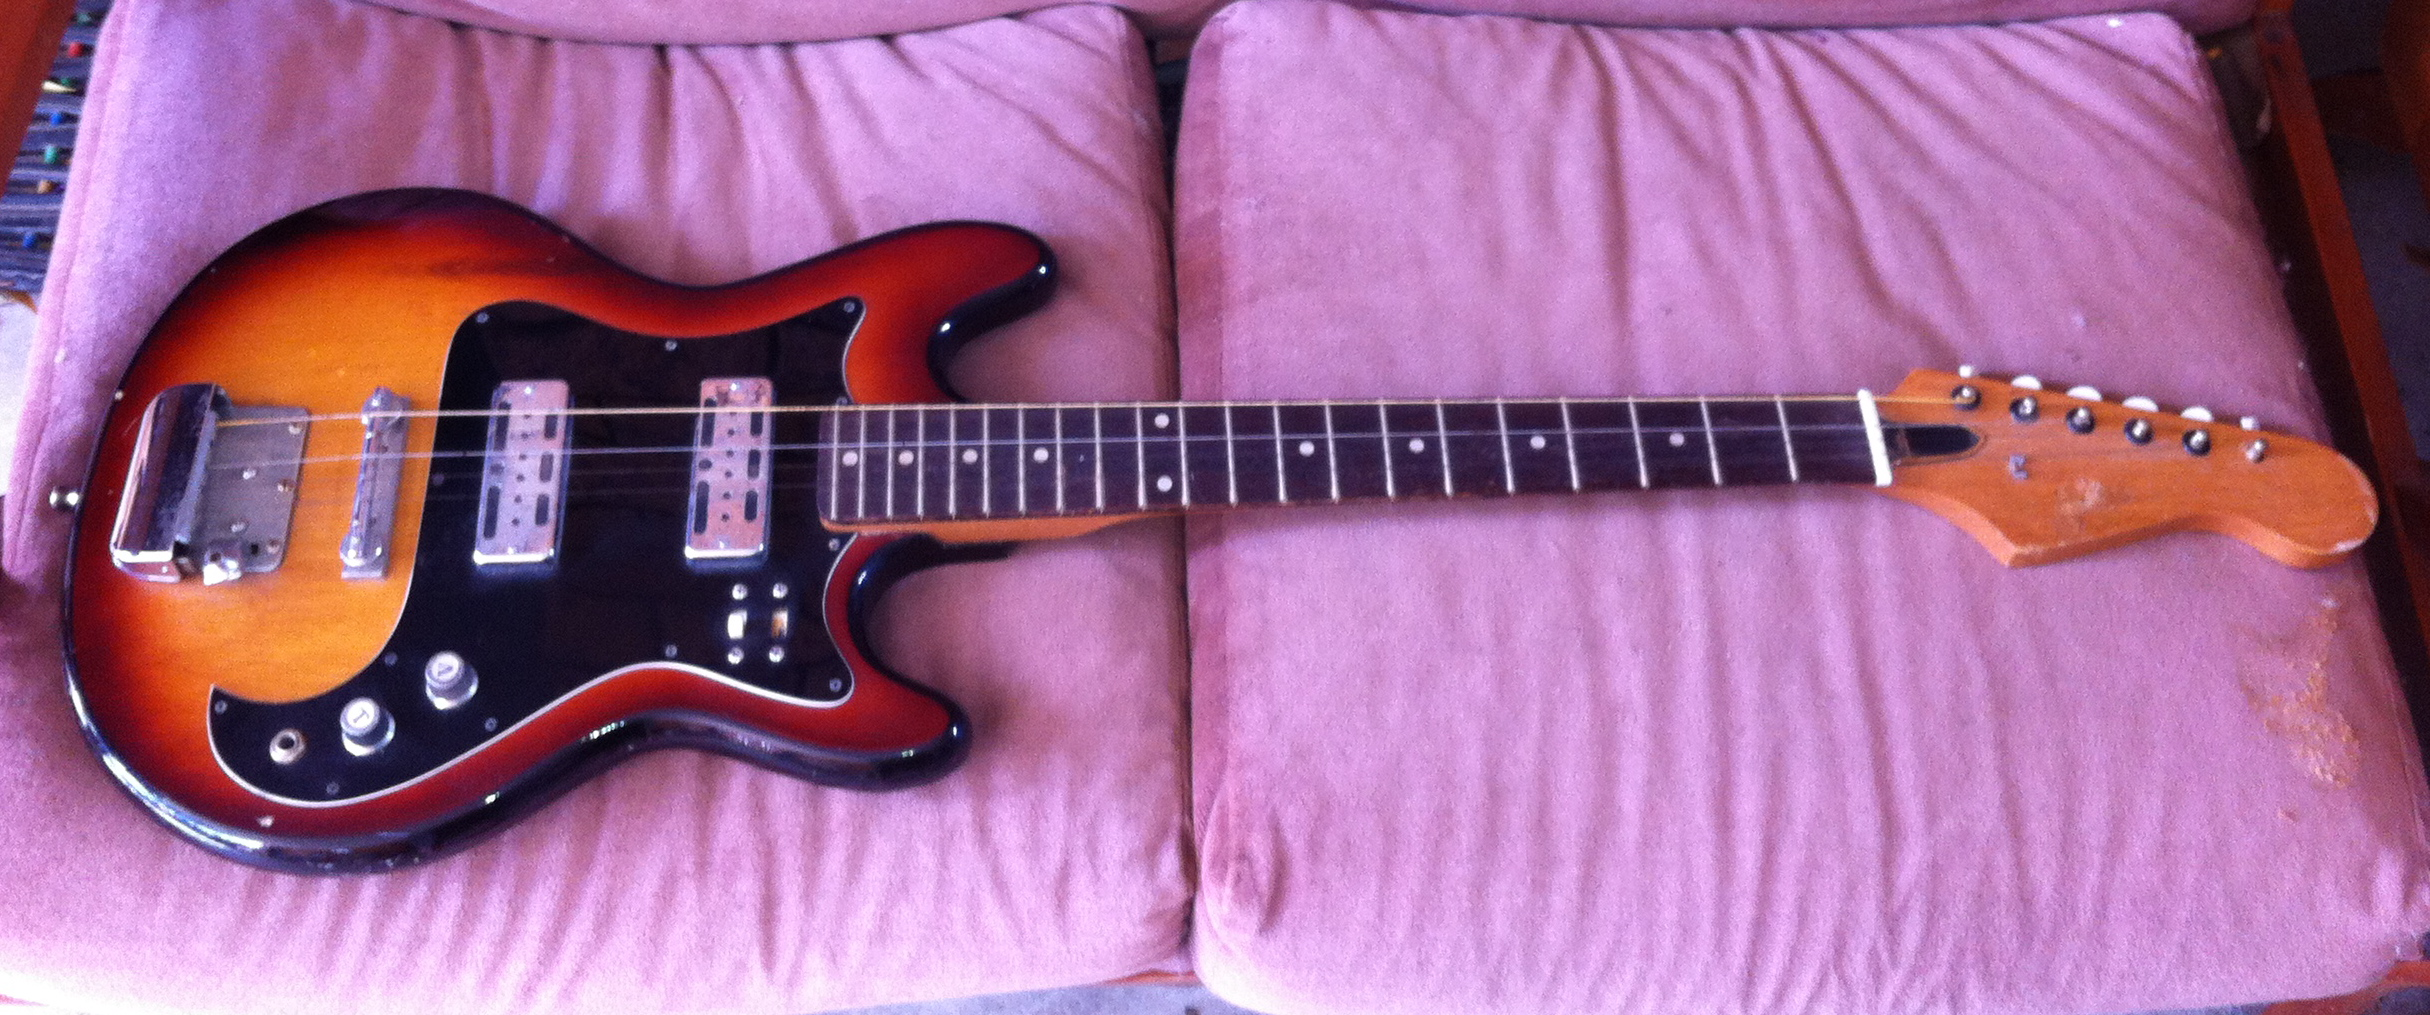 """N"""" is for NORMA!! 1968 Norma EG421-4 Guitar – Drowning in ... Norma Guitar Wiring Diagram on"""